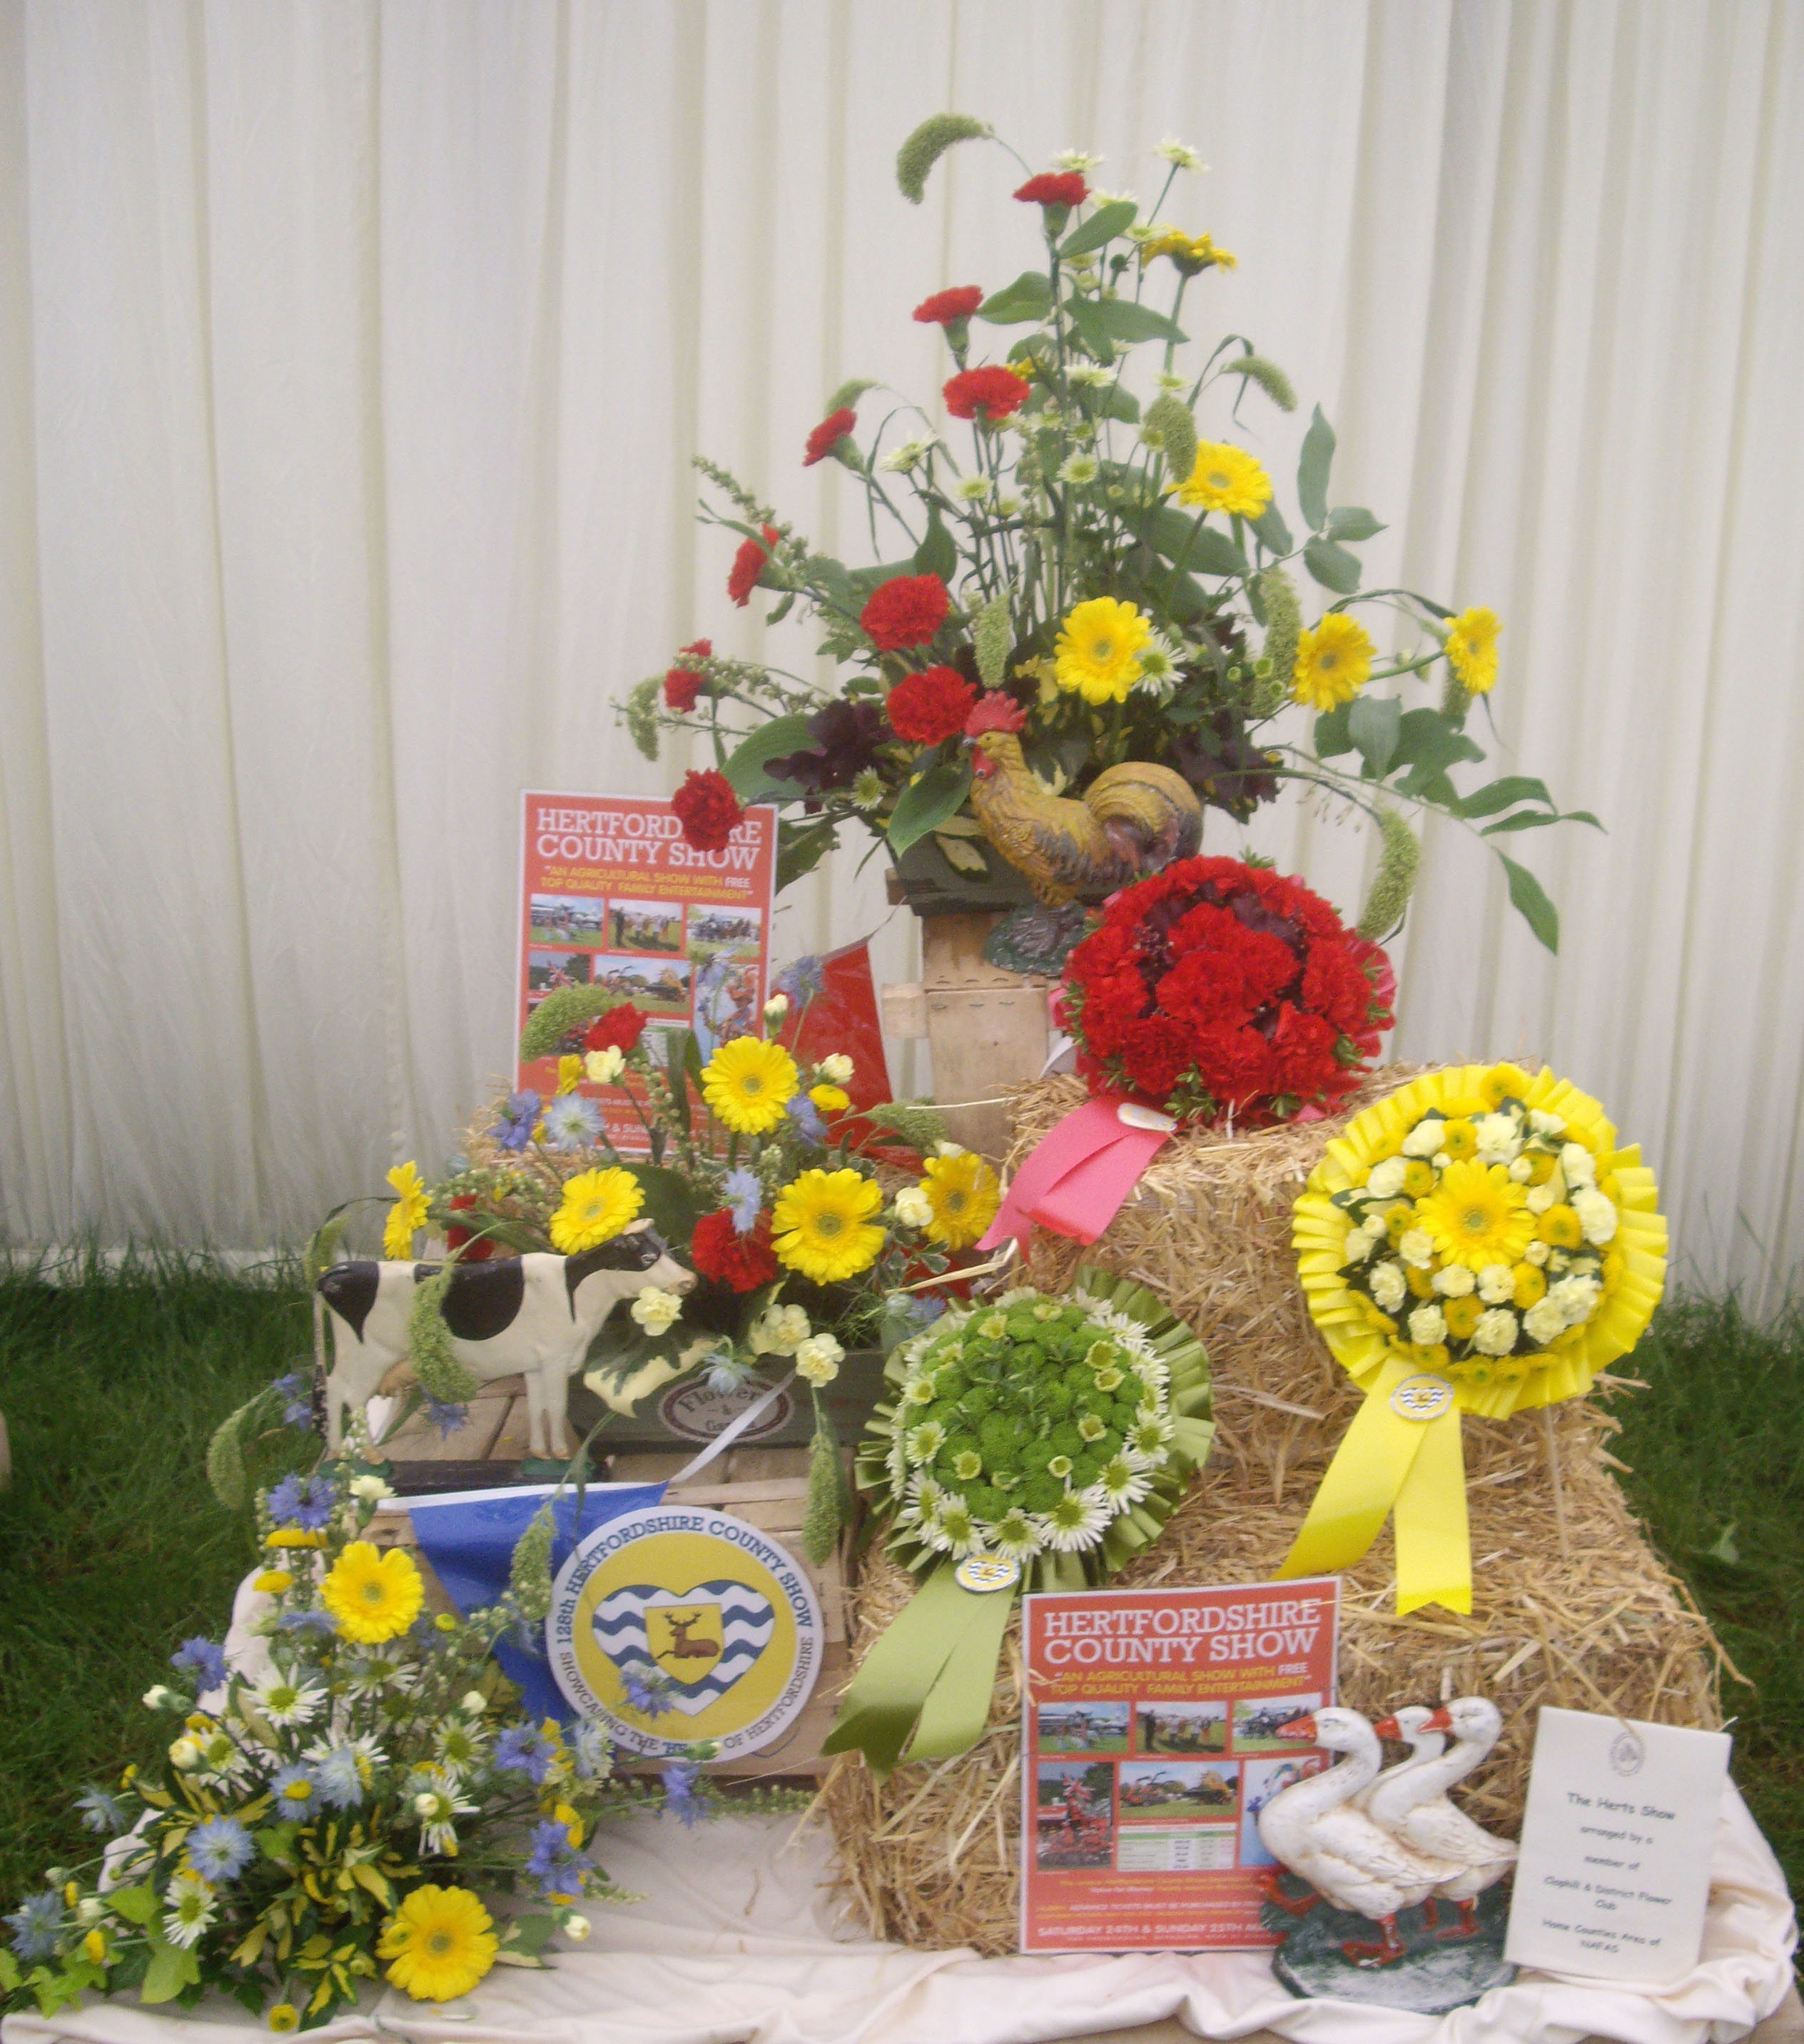 Herts County Show May 2014